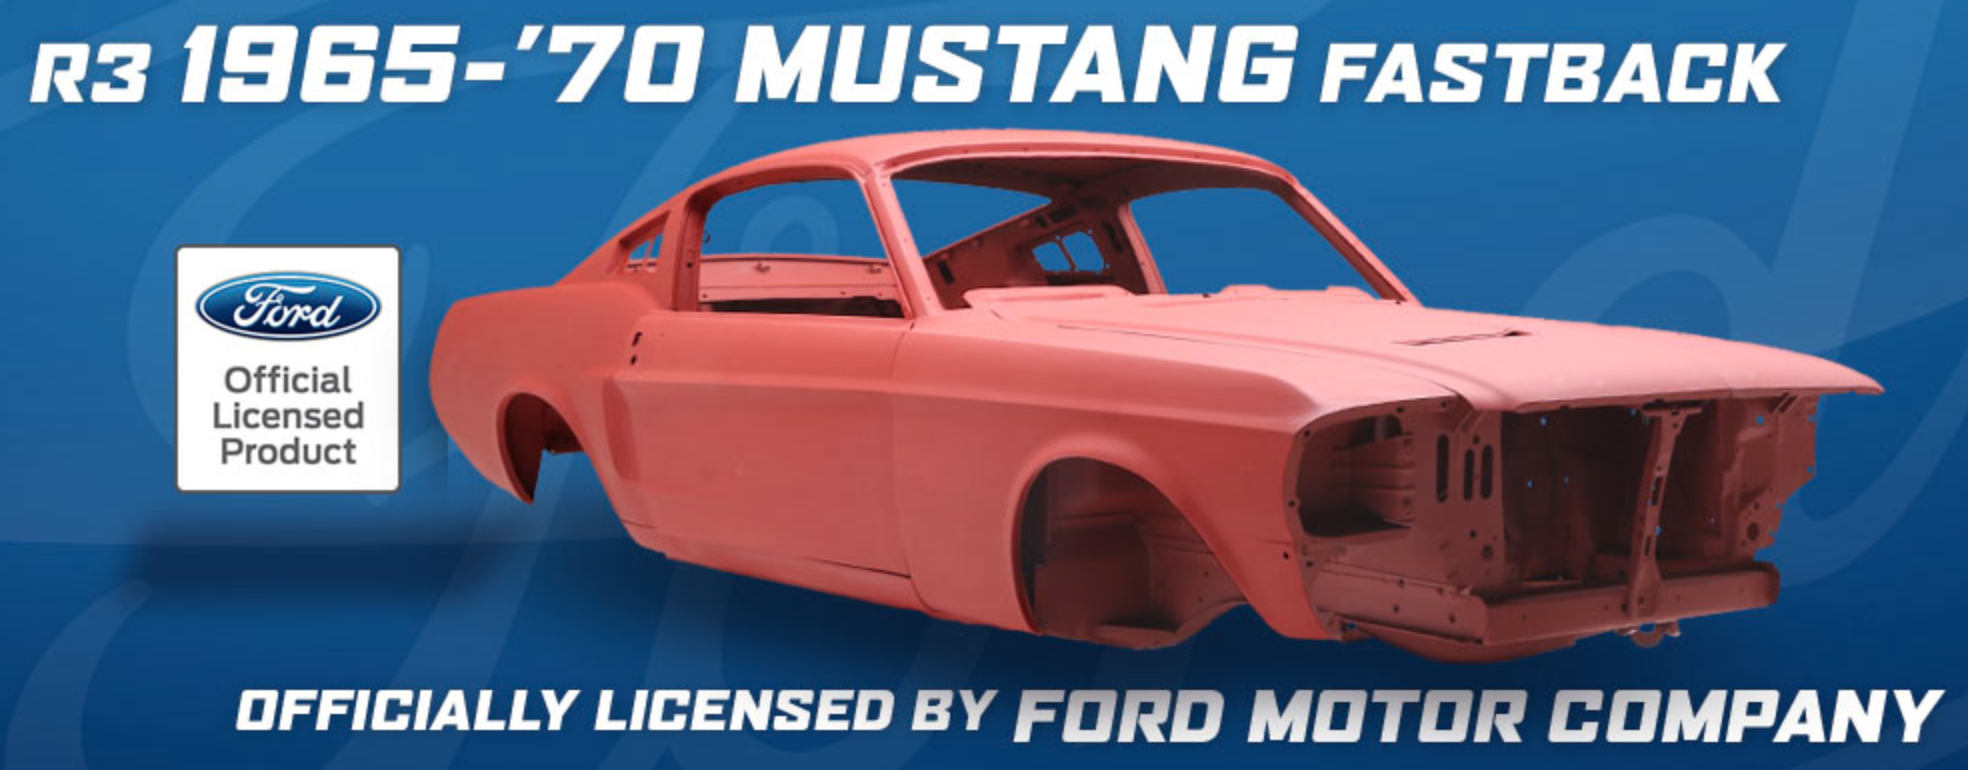 R3 1965 to 1970 Mustang convertible and Fastback bodyshells newly manufactured in the USA